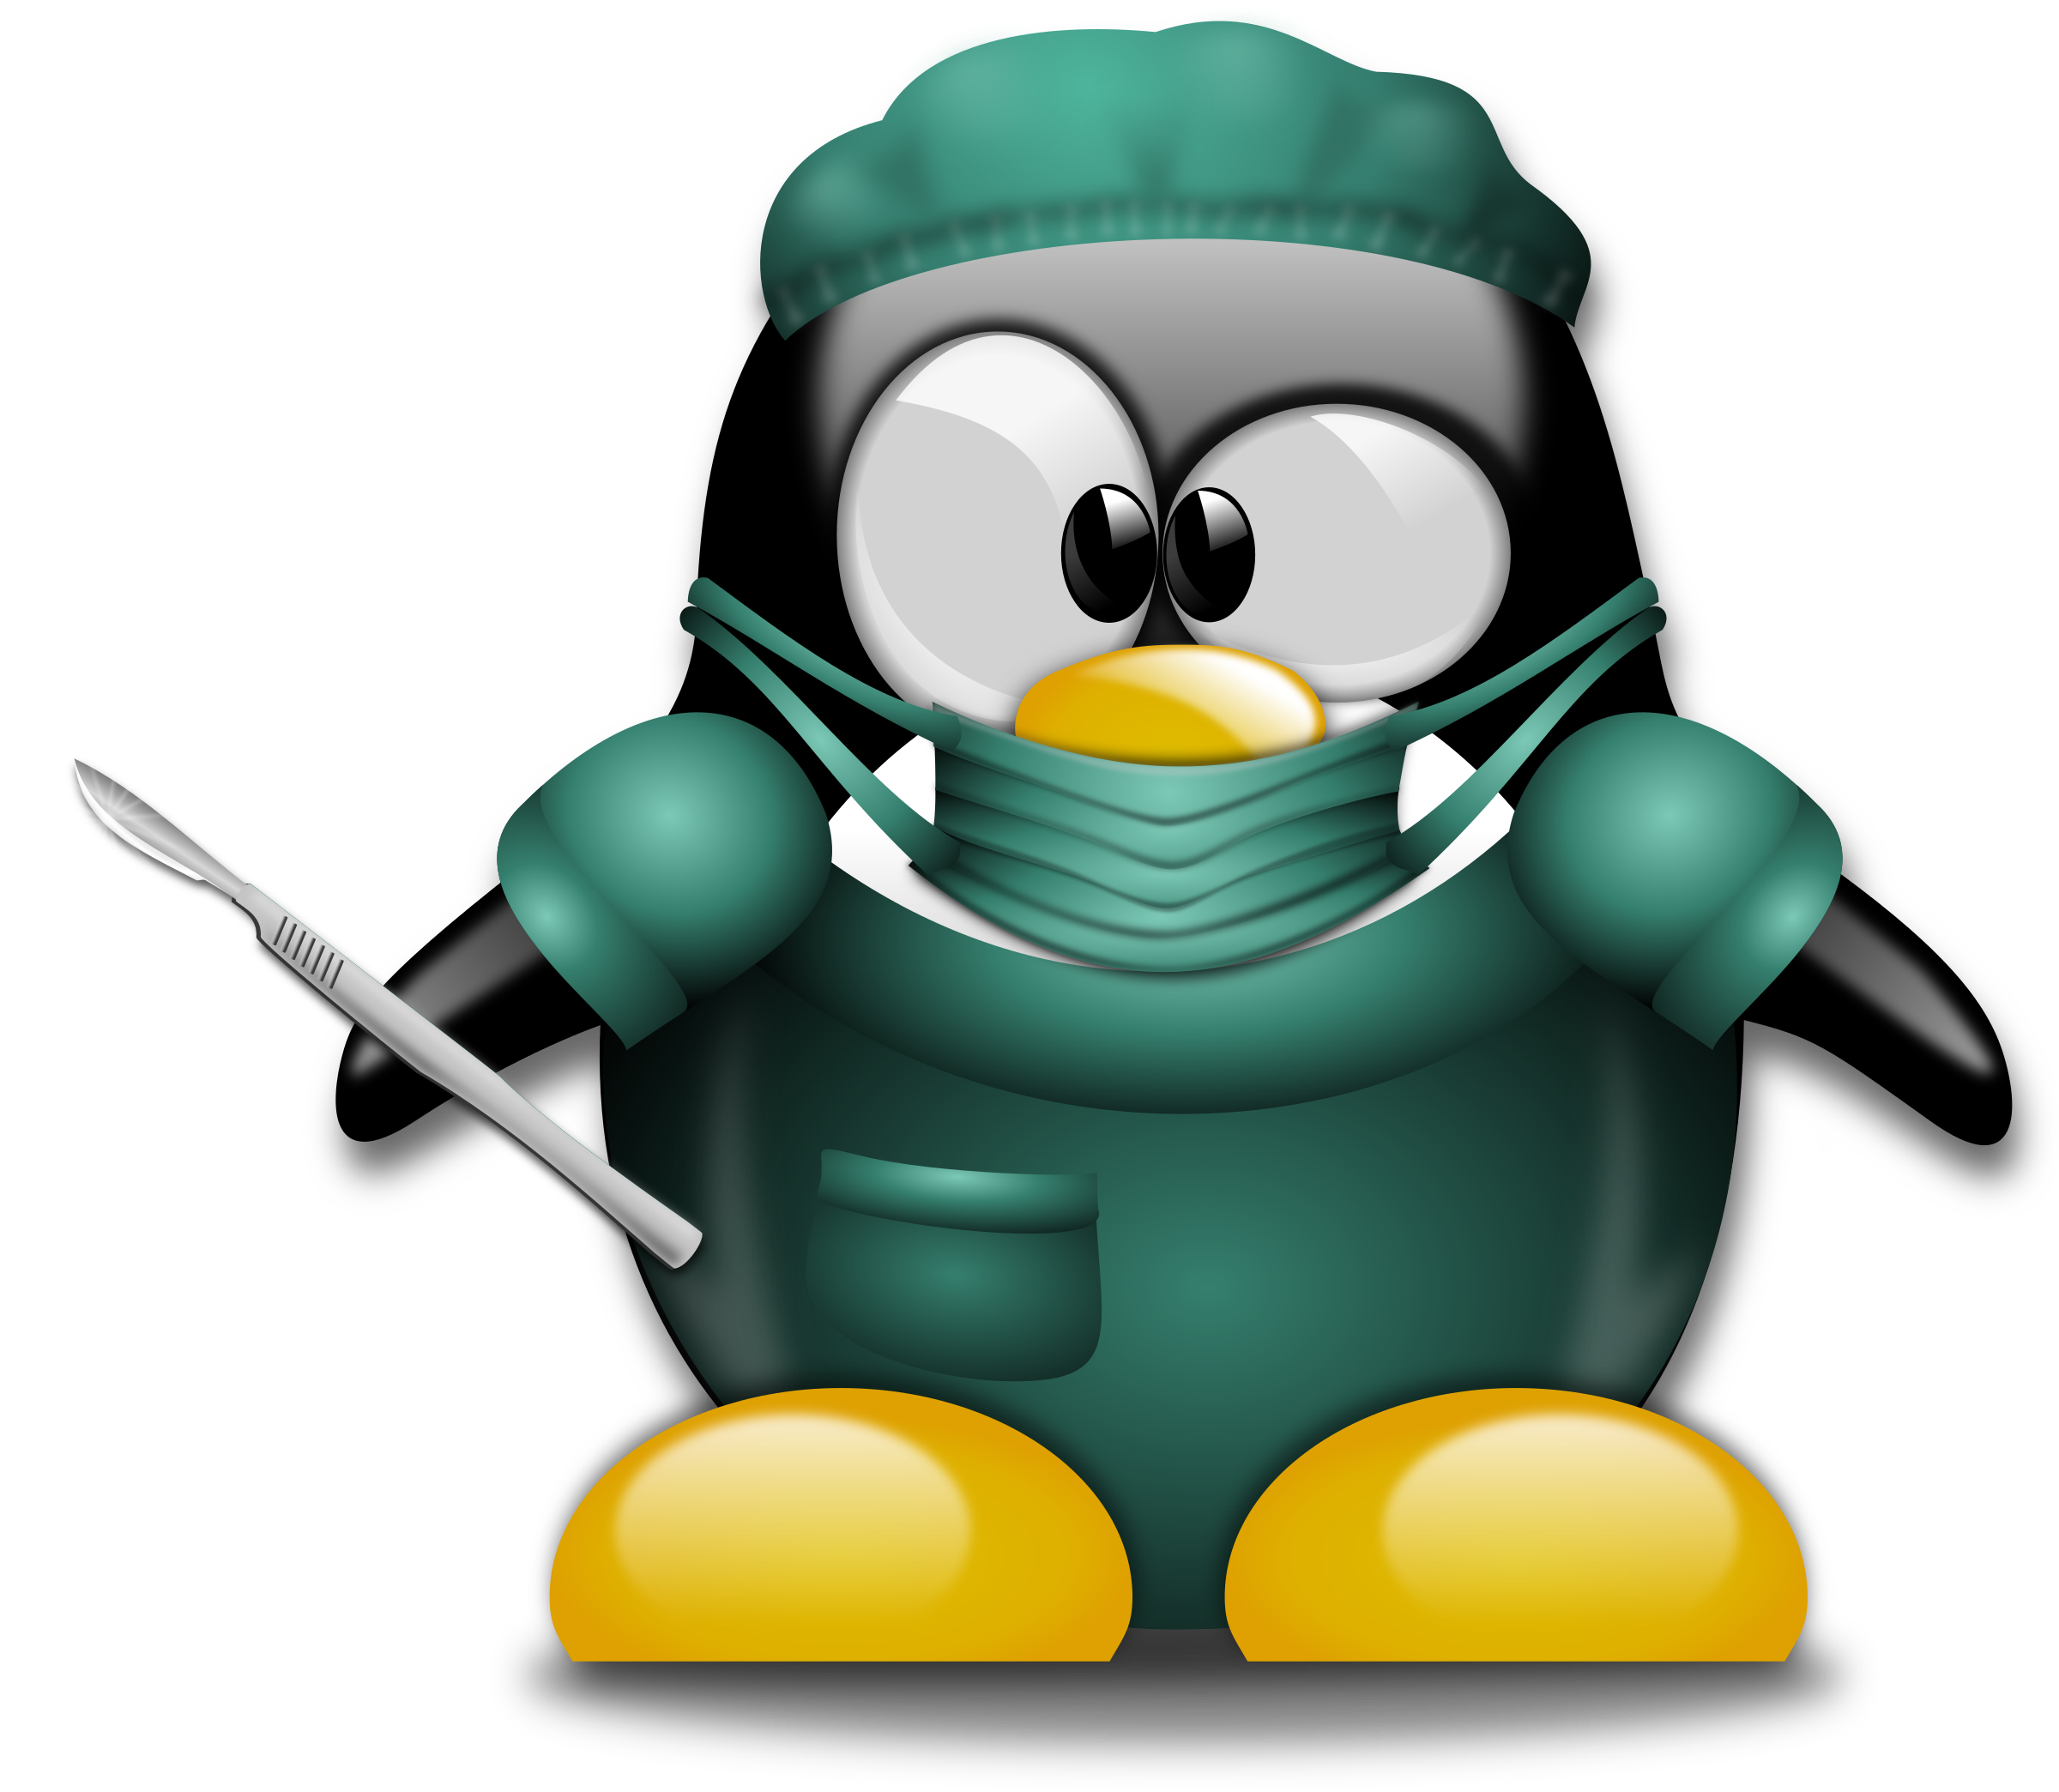 Surgeon clipart surgical assistant. Free cliparts download clip